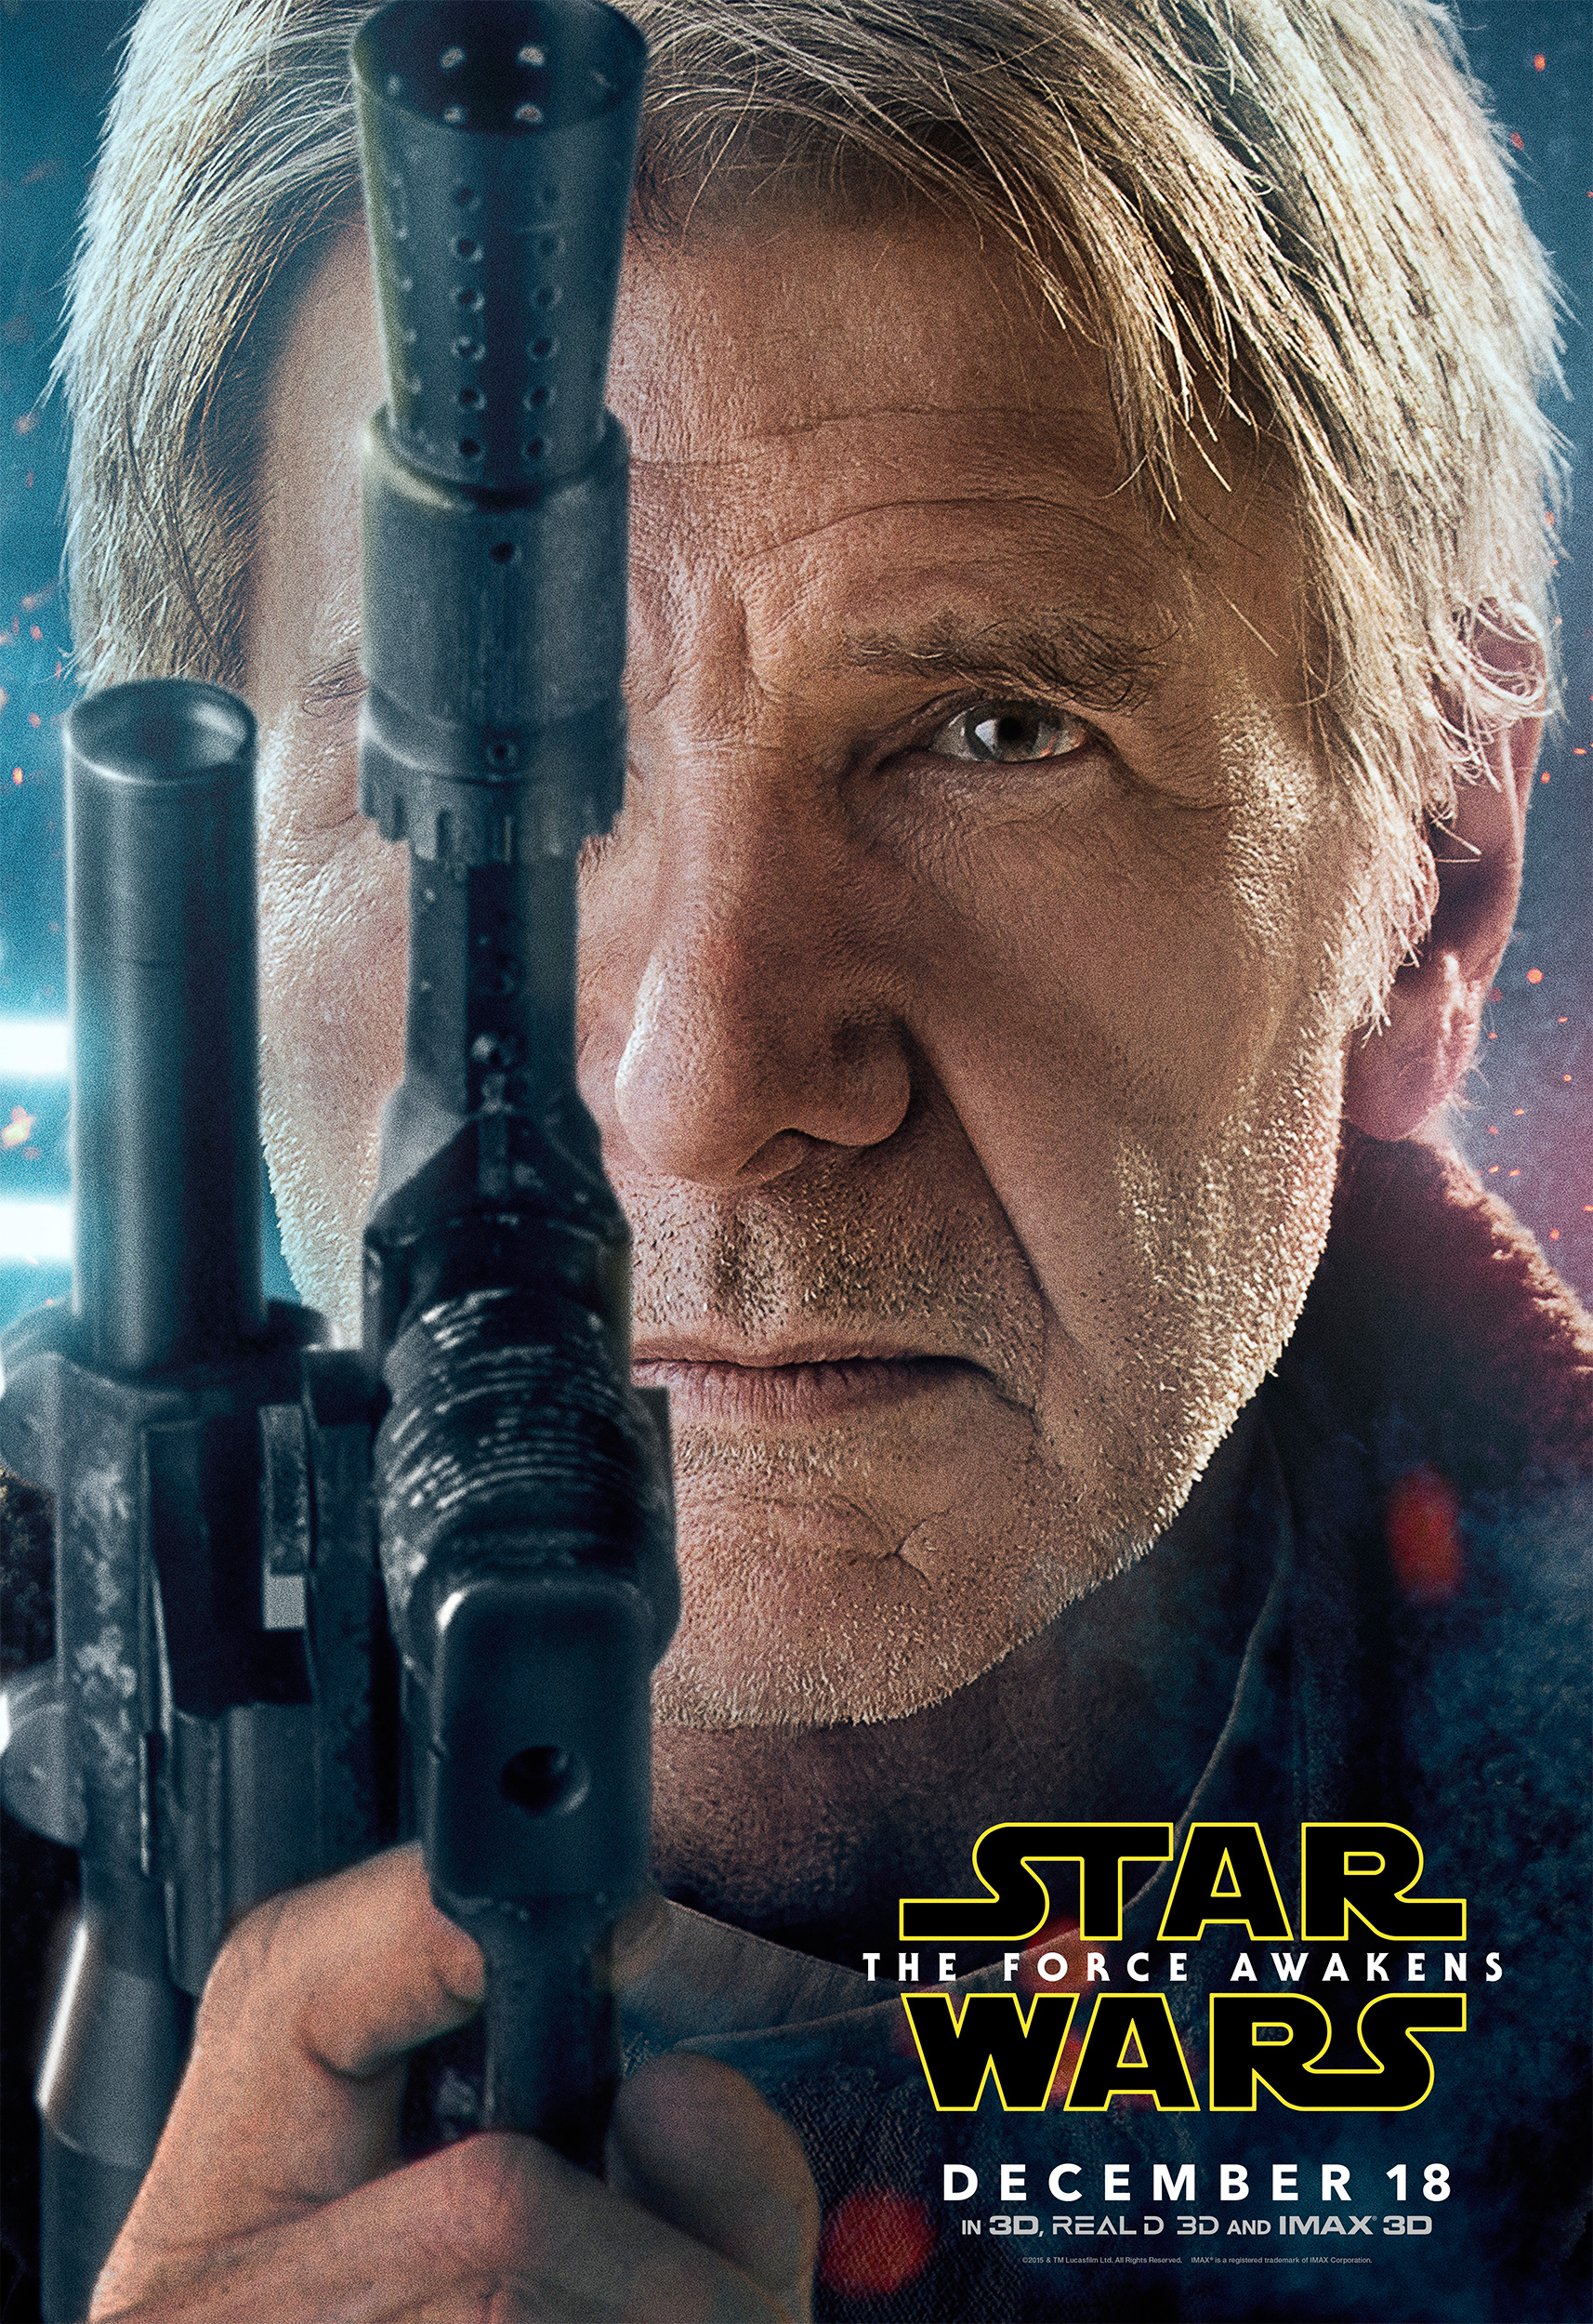 Star Wars Poster New Star Wars The Force Awakens Character Posters Sizzle